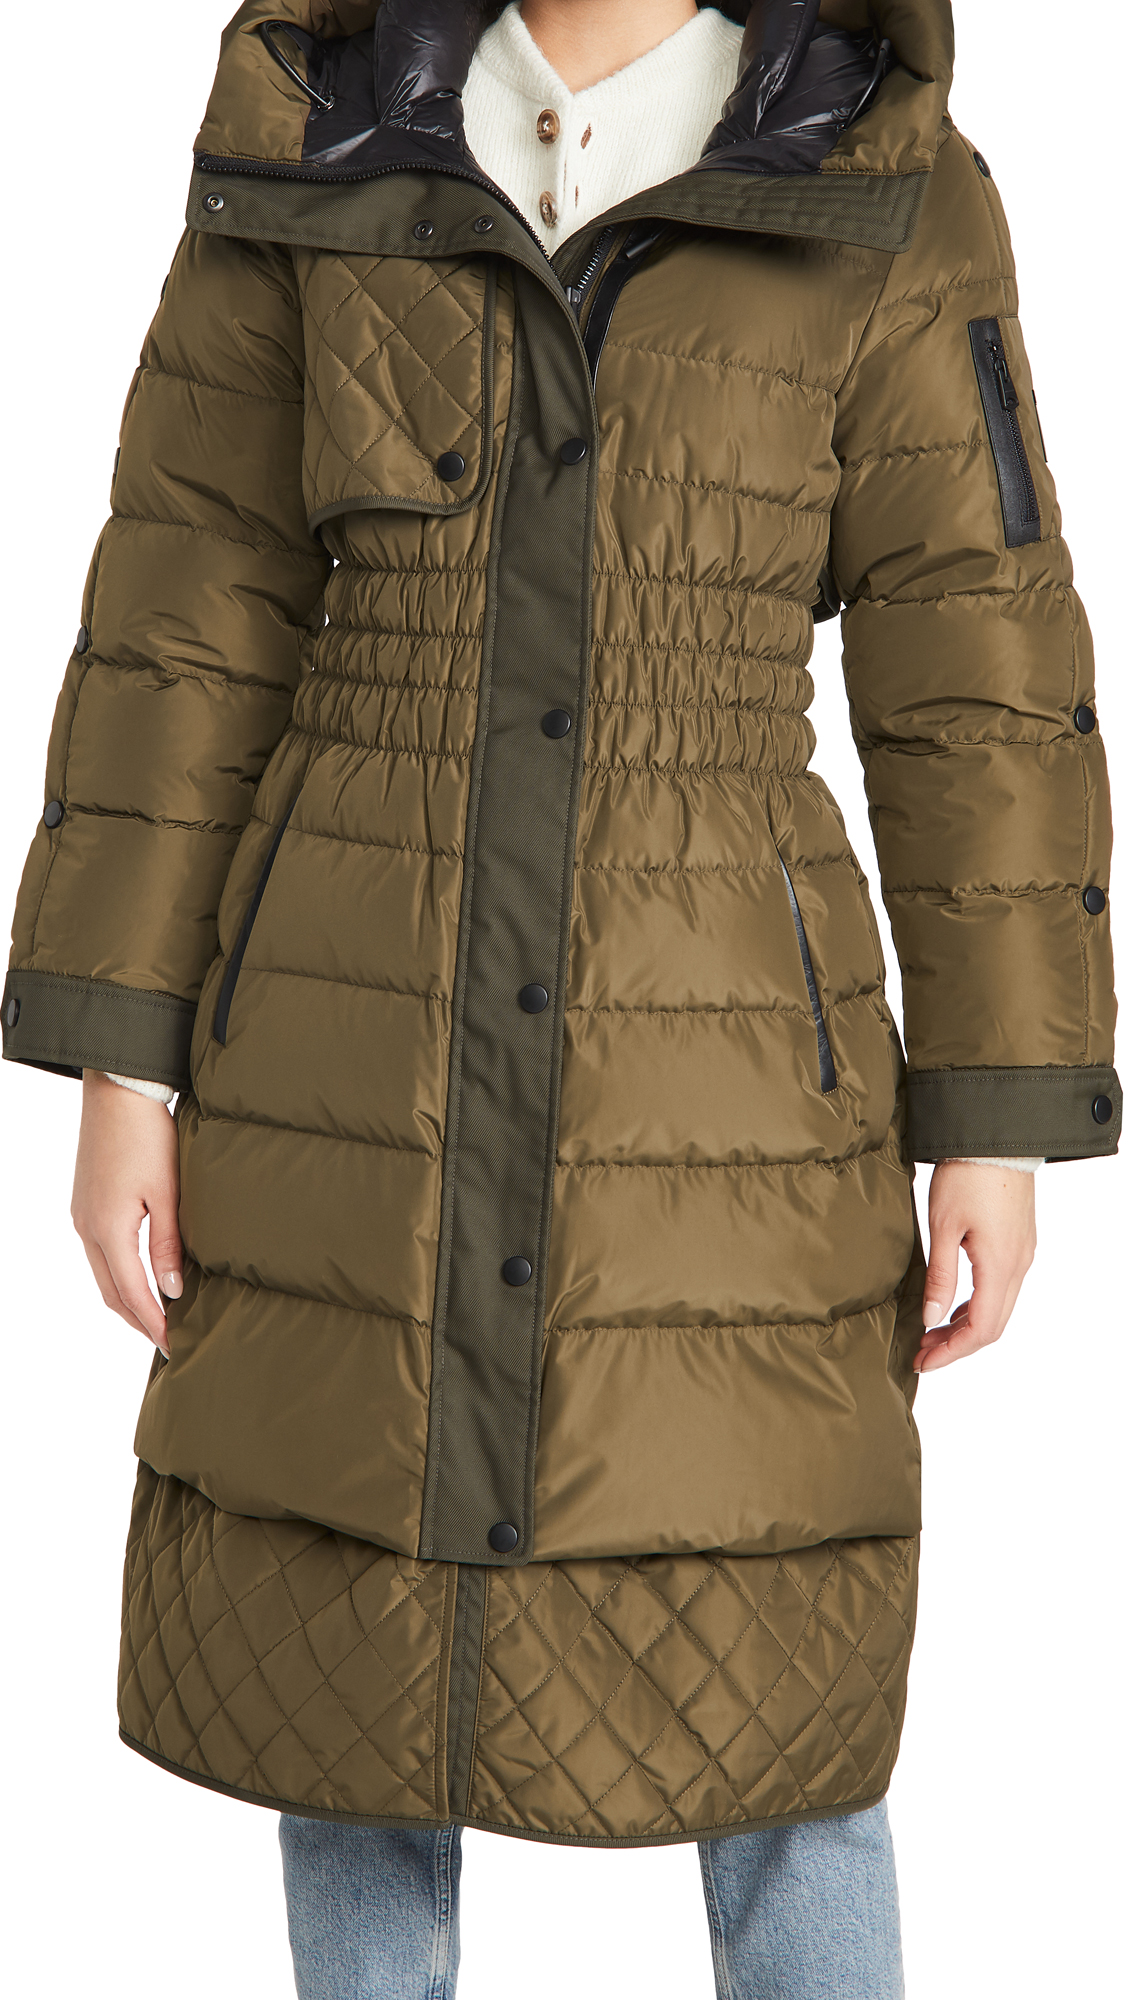 Mackage Willow Jacket